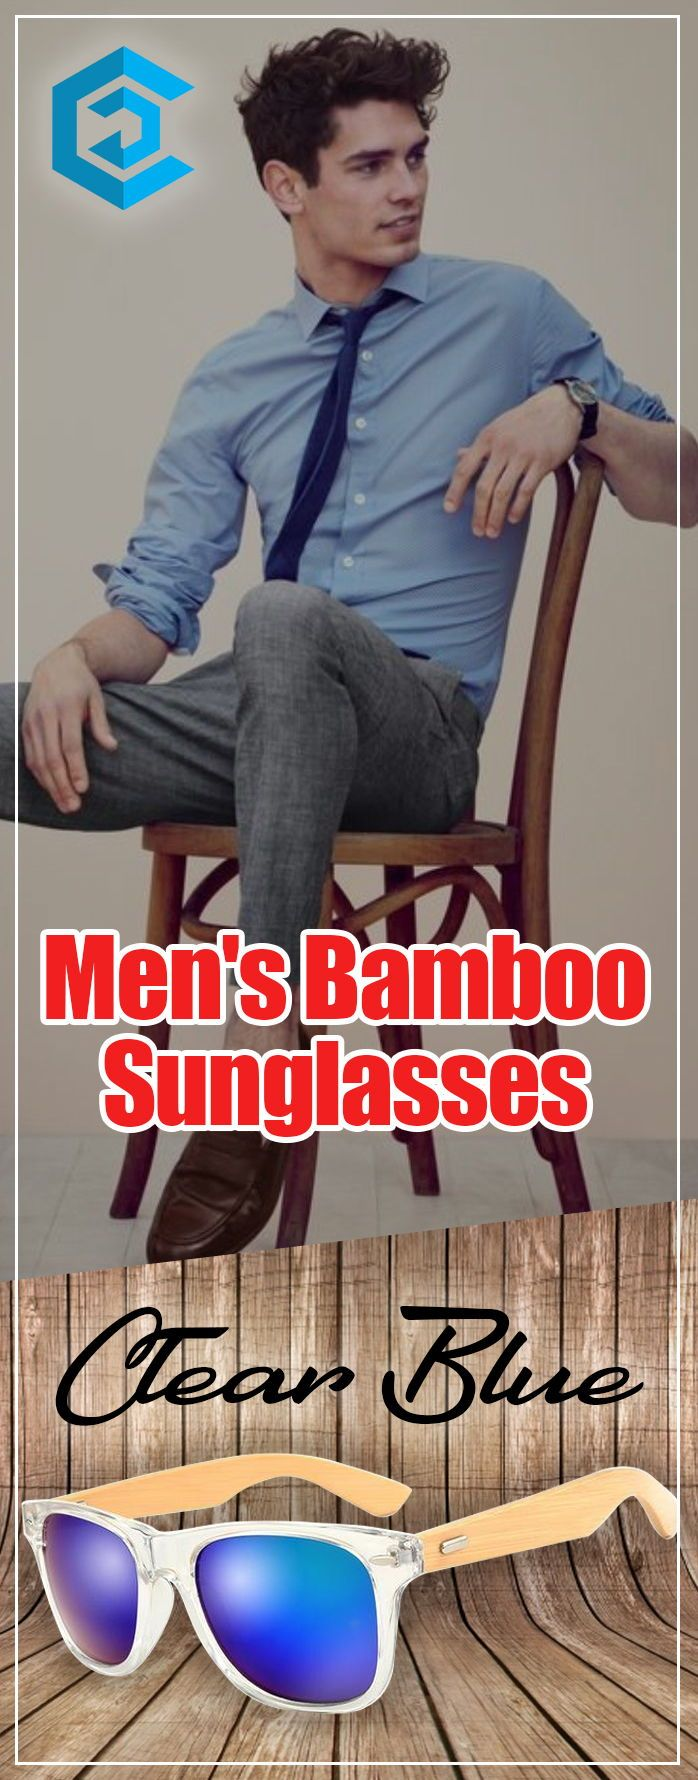 Mens Bamboo Sunglasses |2017| |fashion| |casual| |square| |wood| |hipster| |oval face| |style| |popular| |brands| |polarized| |sport| |designer| |classic| |affordable| |classy| |guys| |summer| |beach| #sunglasses